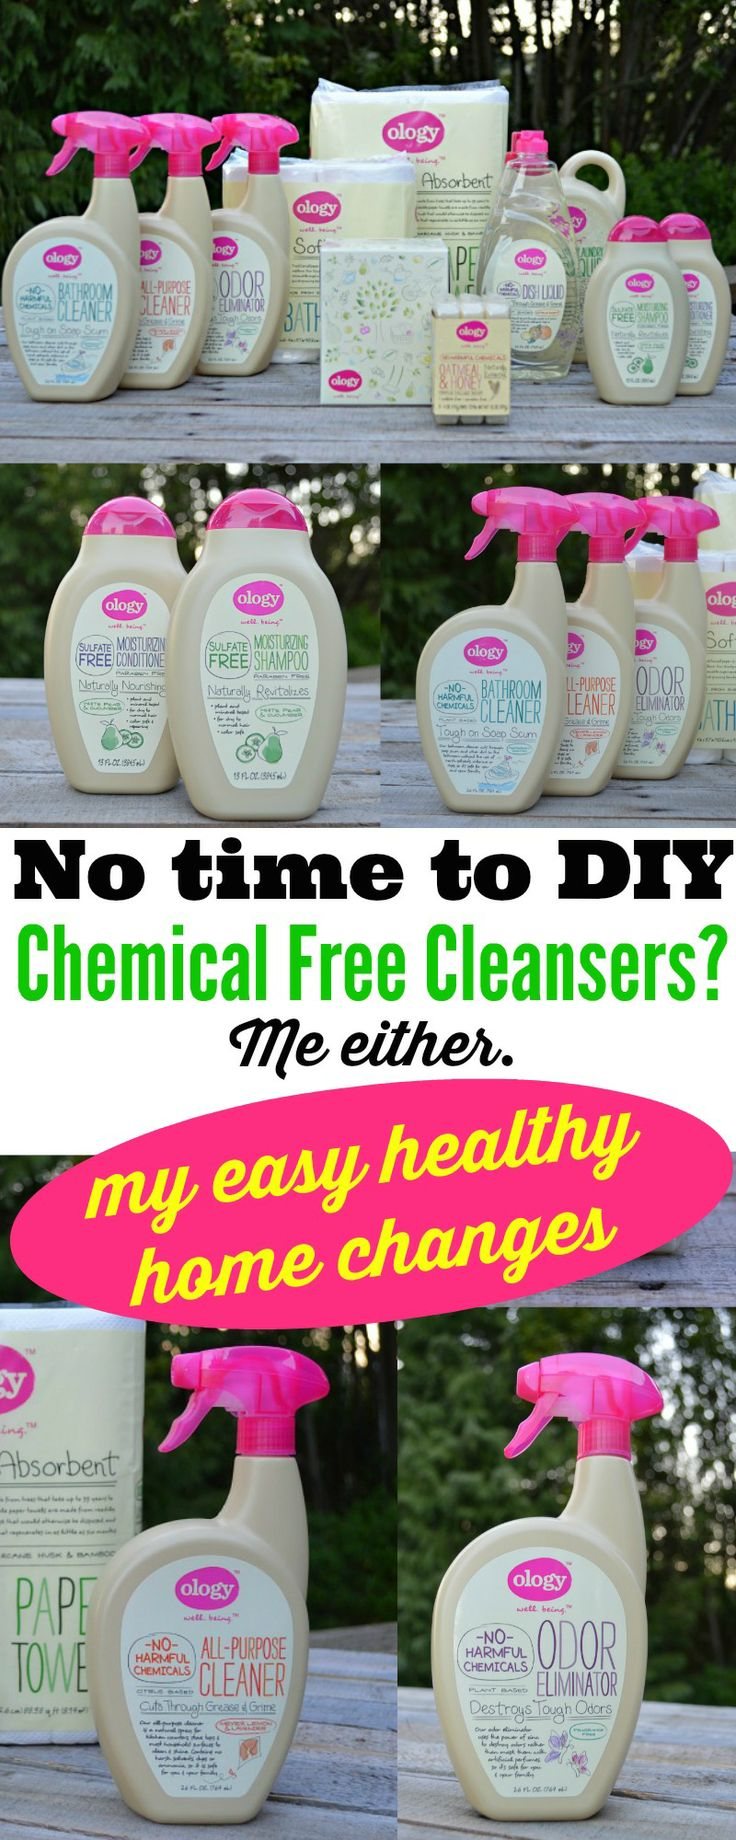 It's easy to clean Chemical Free - No diy required with #walgreensology ready made cleansers. Guilt free cleaning for a healthy home. #shop